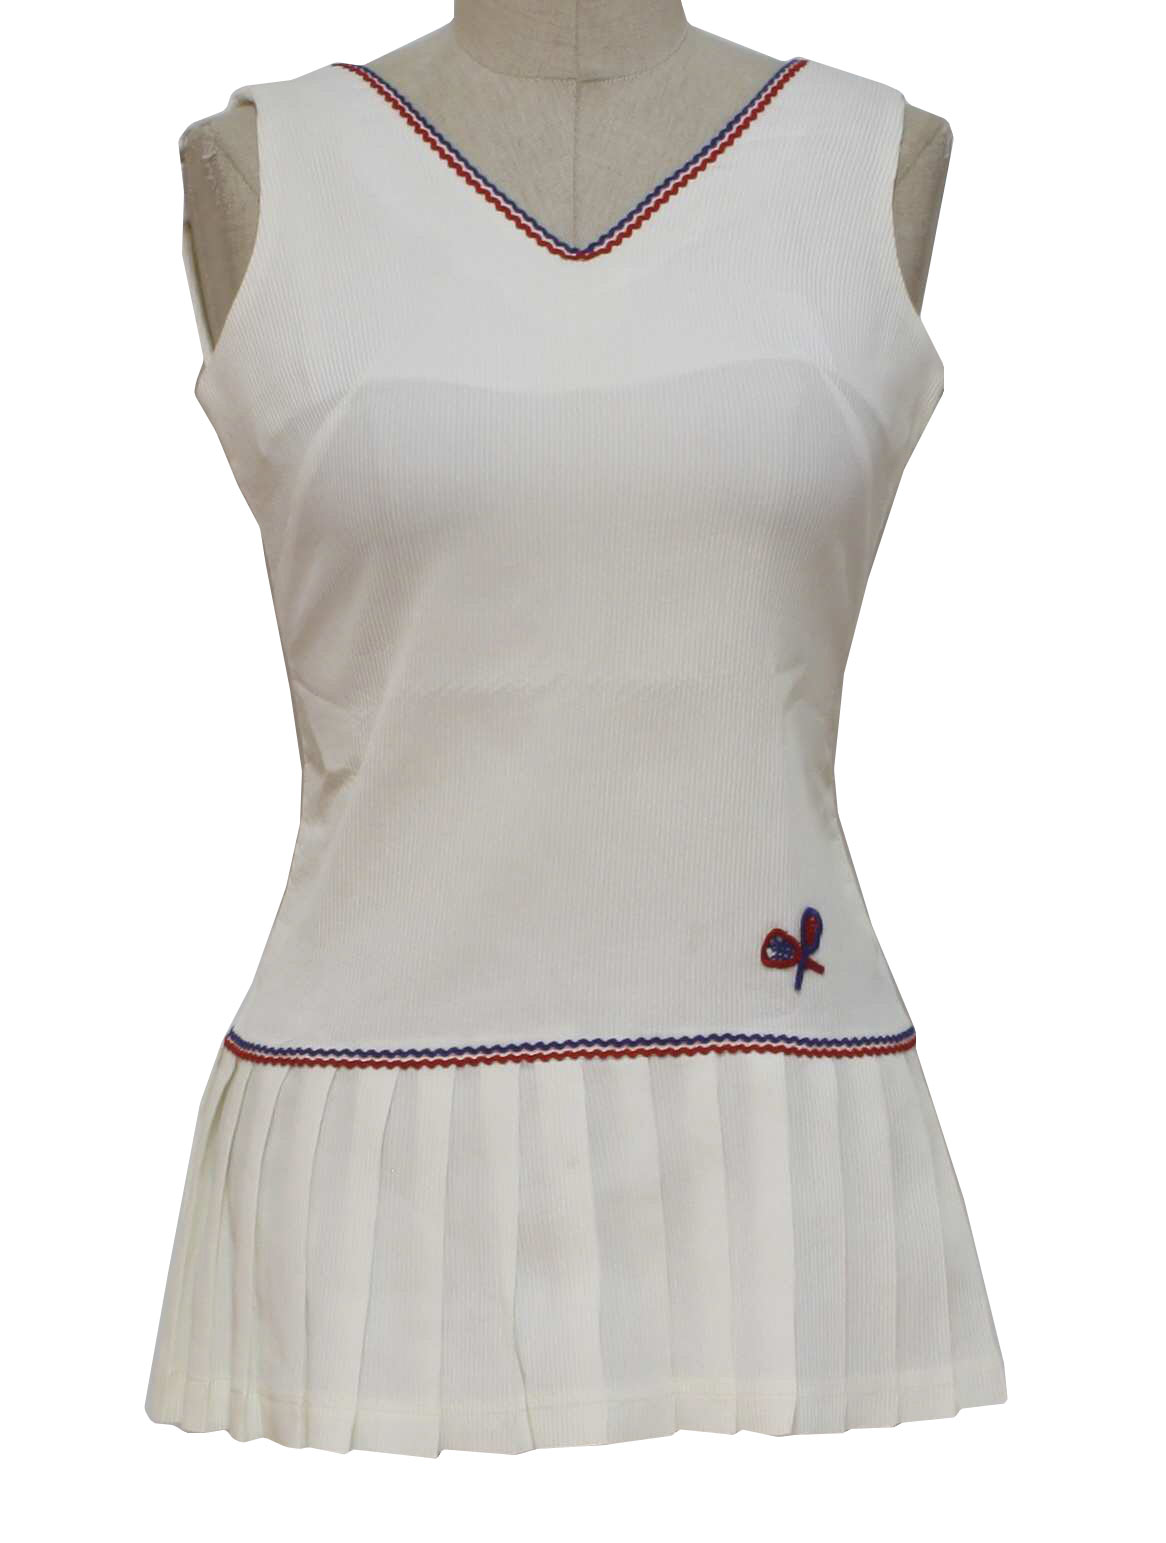 Retro 1970s Mini Dress 70s Care Label Only Womens White Tennis Style Polyester And Triacetate Sleeveless V Neckline Cute Box Pleat Skirt